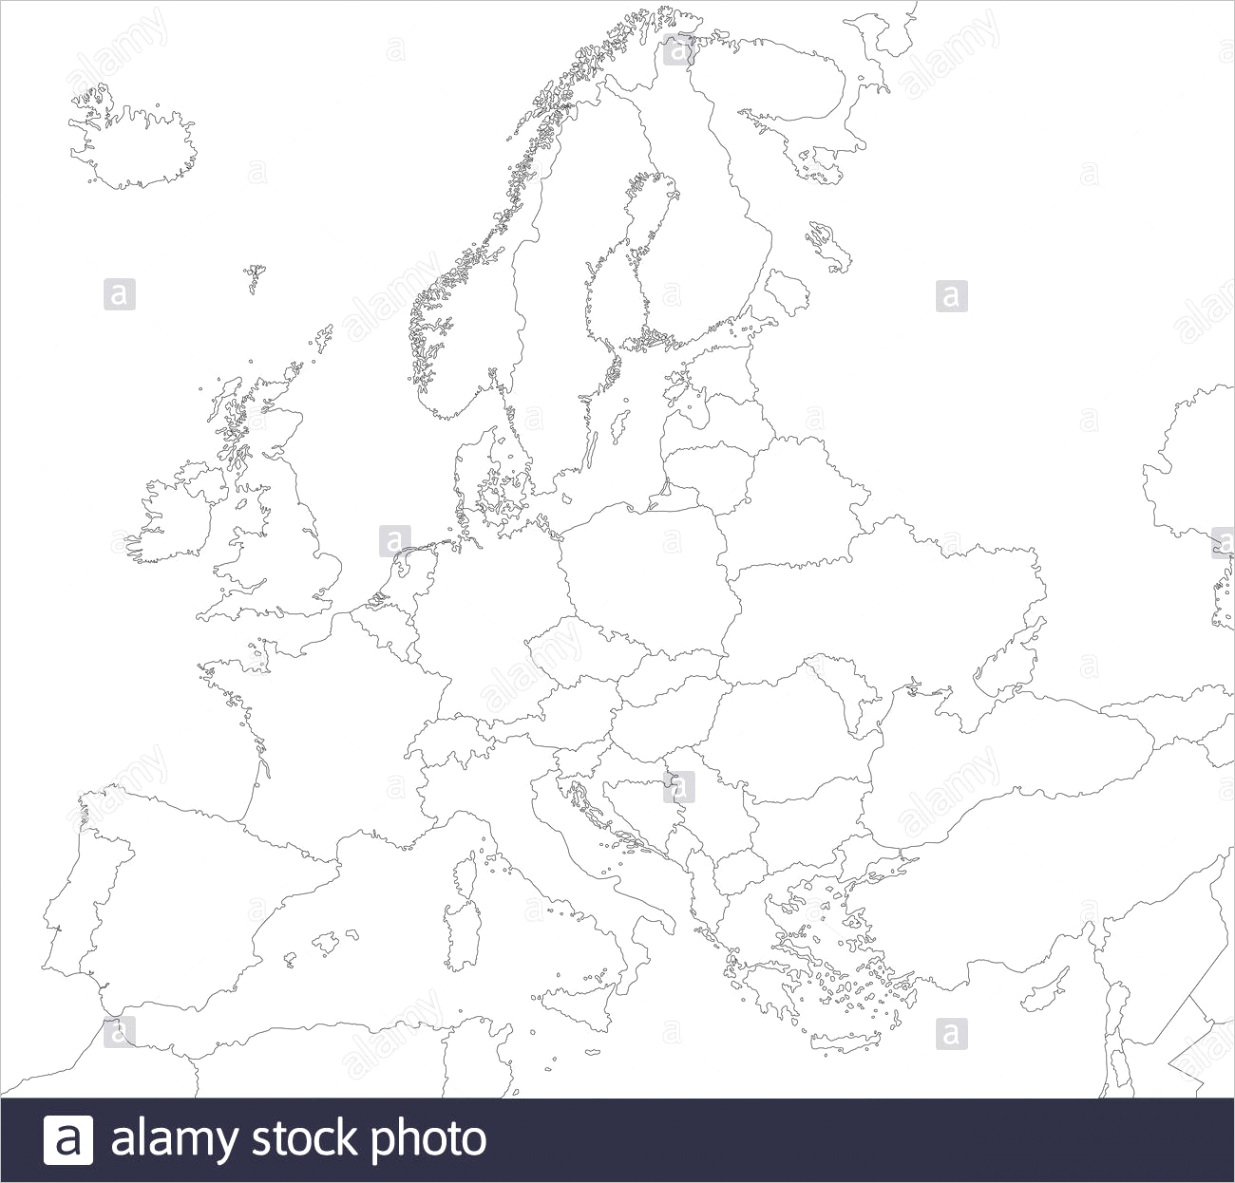 world map countries outline blackwhite=1